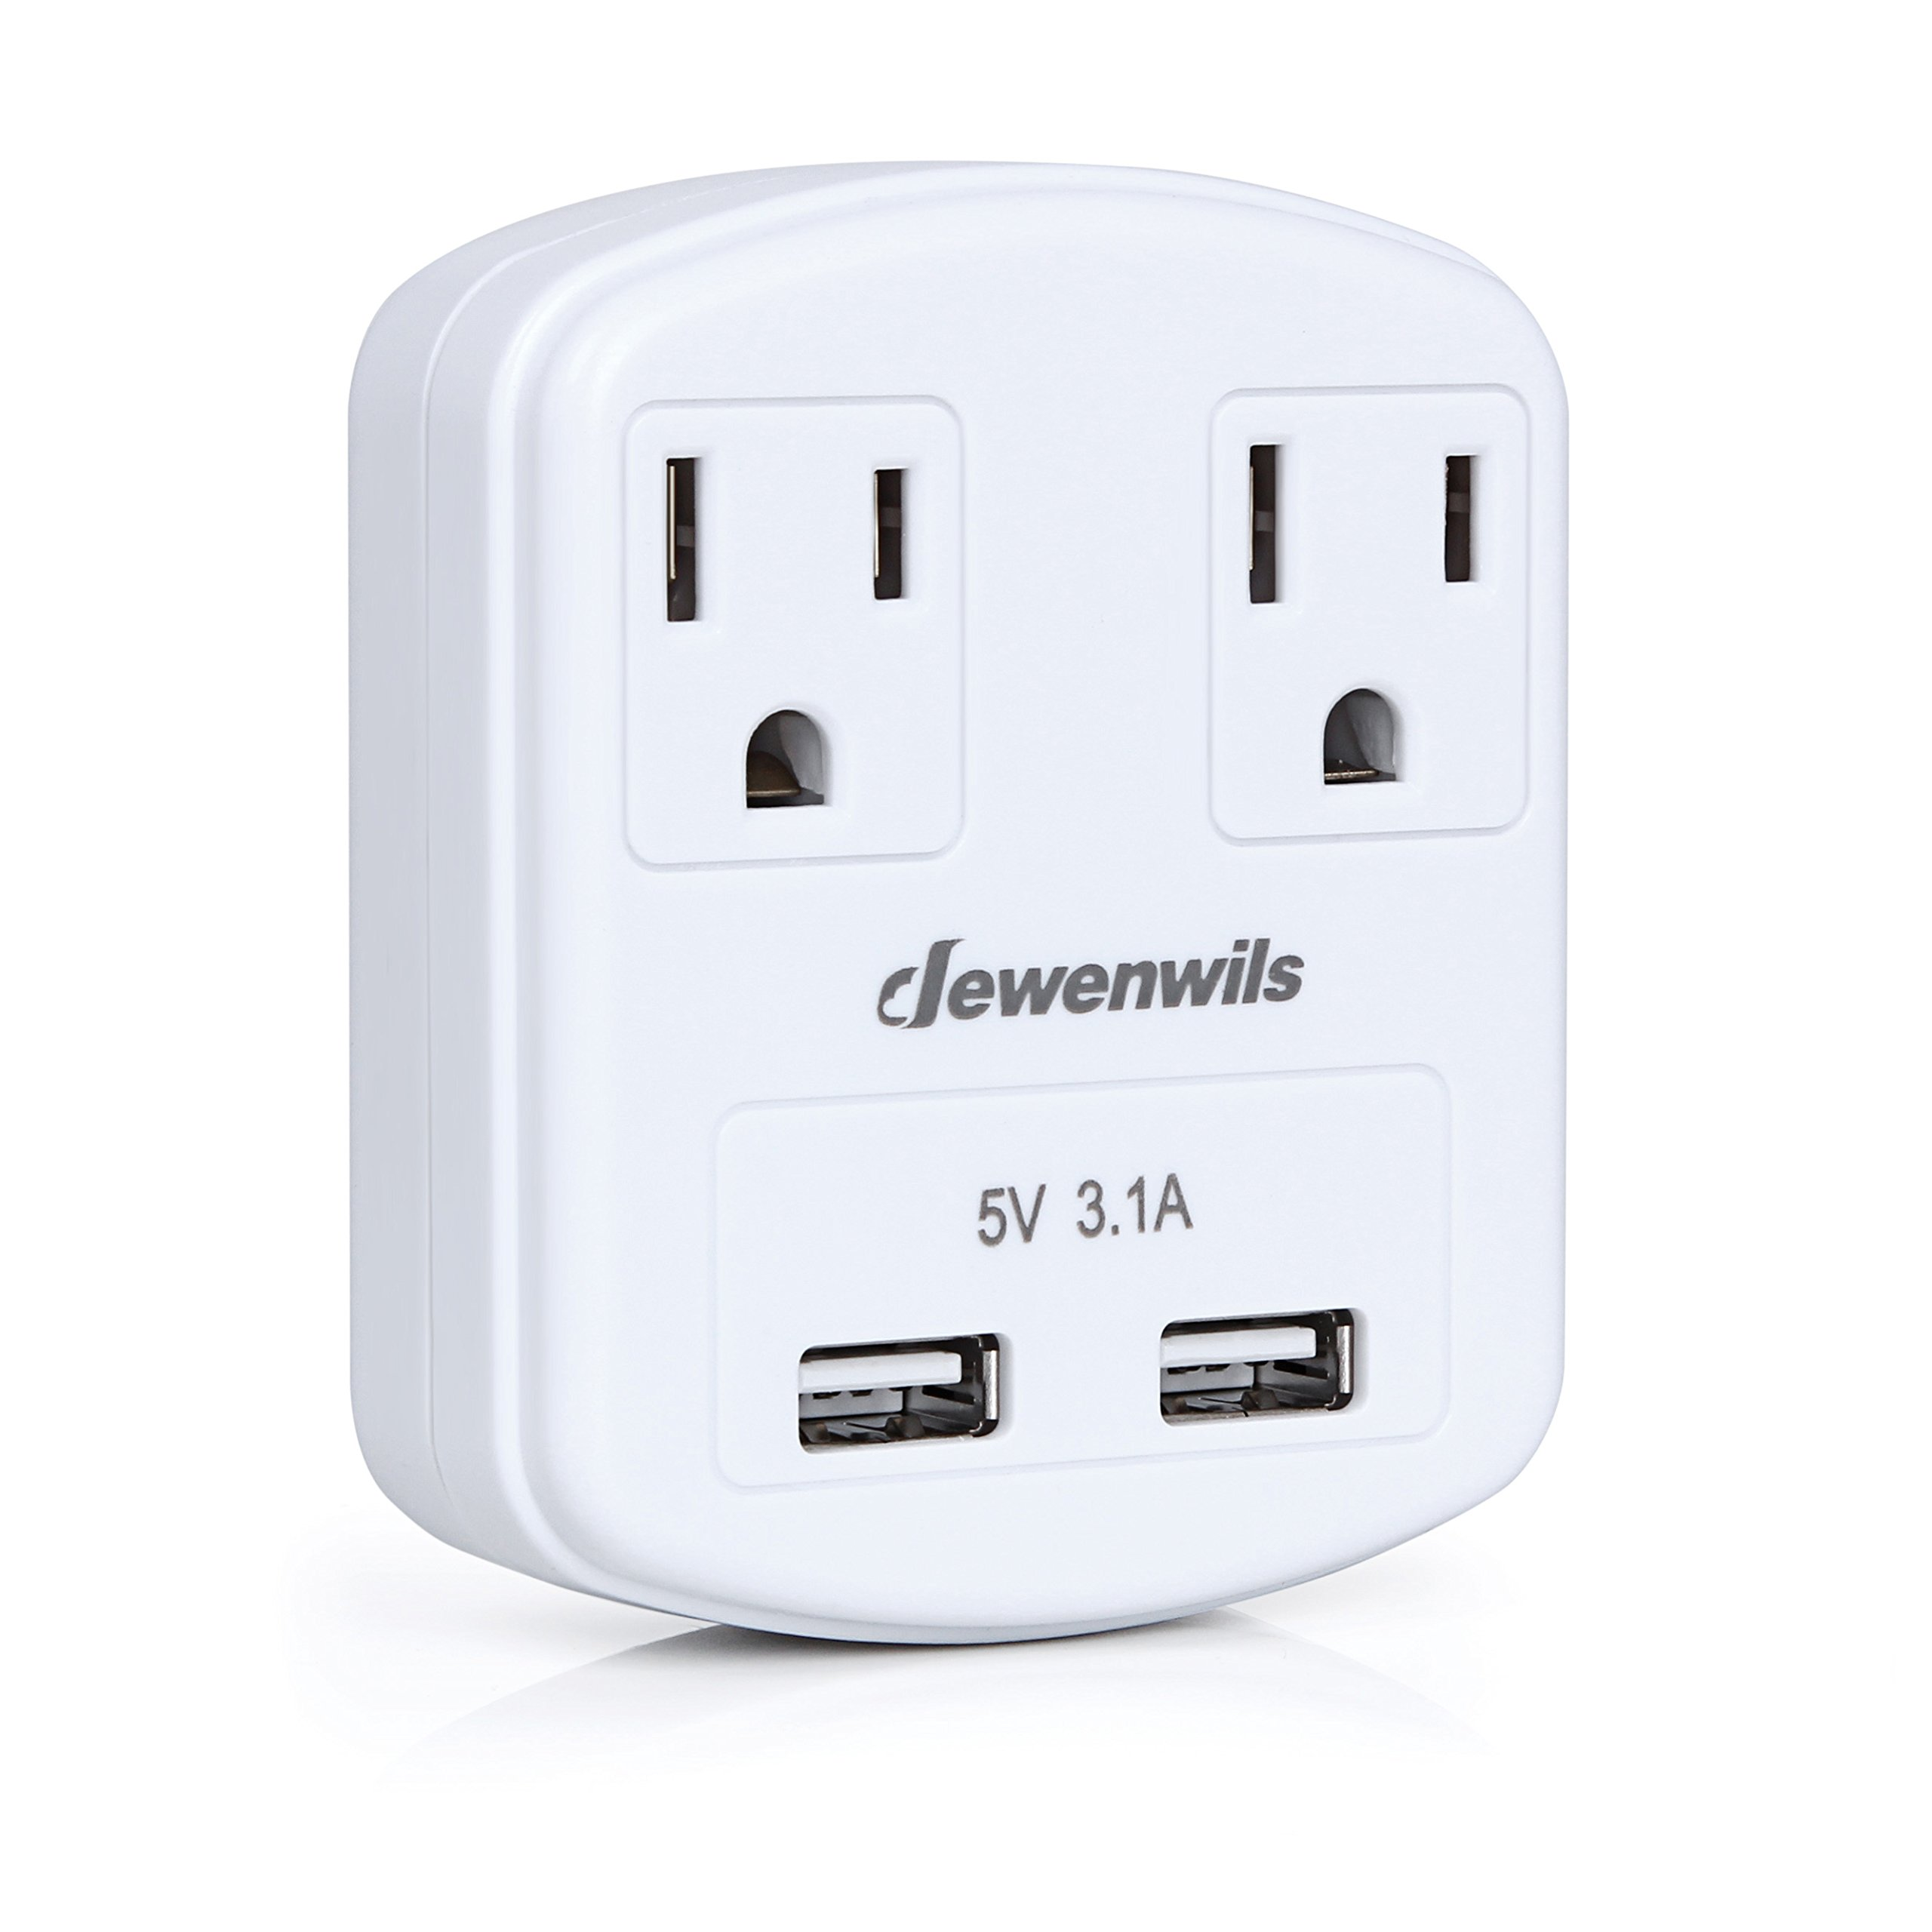 Dewenwils Multi Outlet Plug with 2 USB Ports (3.1A Total), Small Power Strip USB Charger for Cruise Ship/Hotel / Dormitory, Compatible with GFCI, ETL Listed, White by DEWENWILS (Image #1)